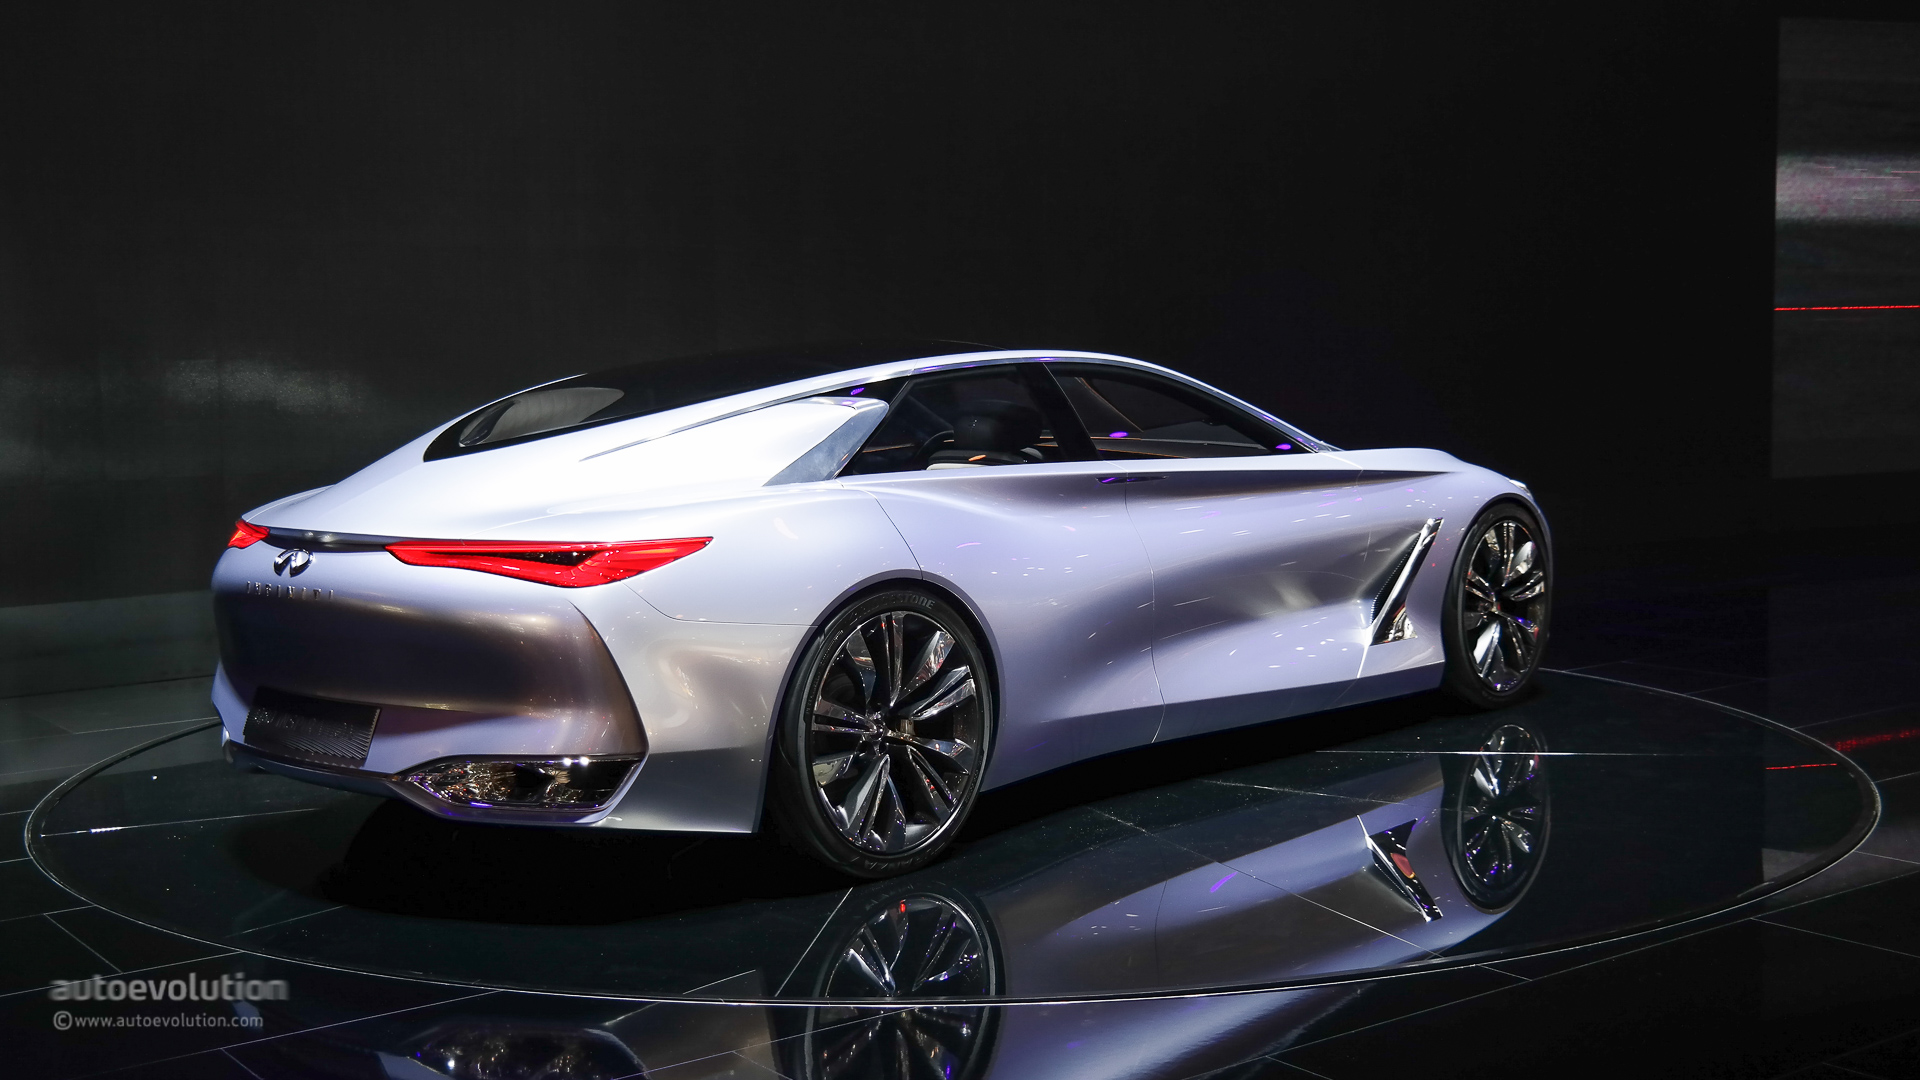 Stylish Infiniti Q80 Four-Door Coupe Demands Attention in ...